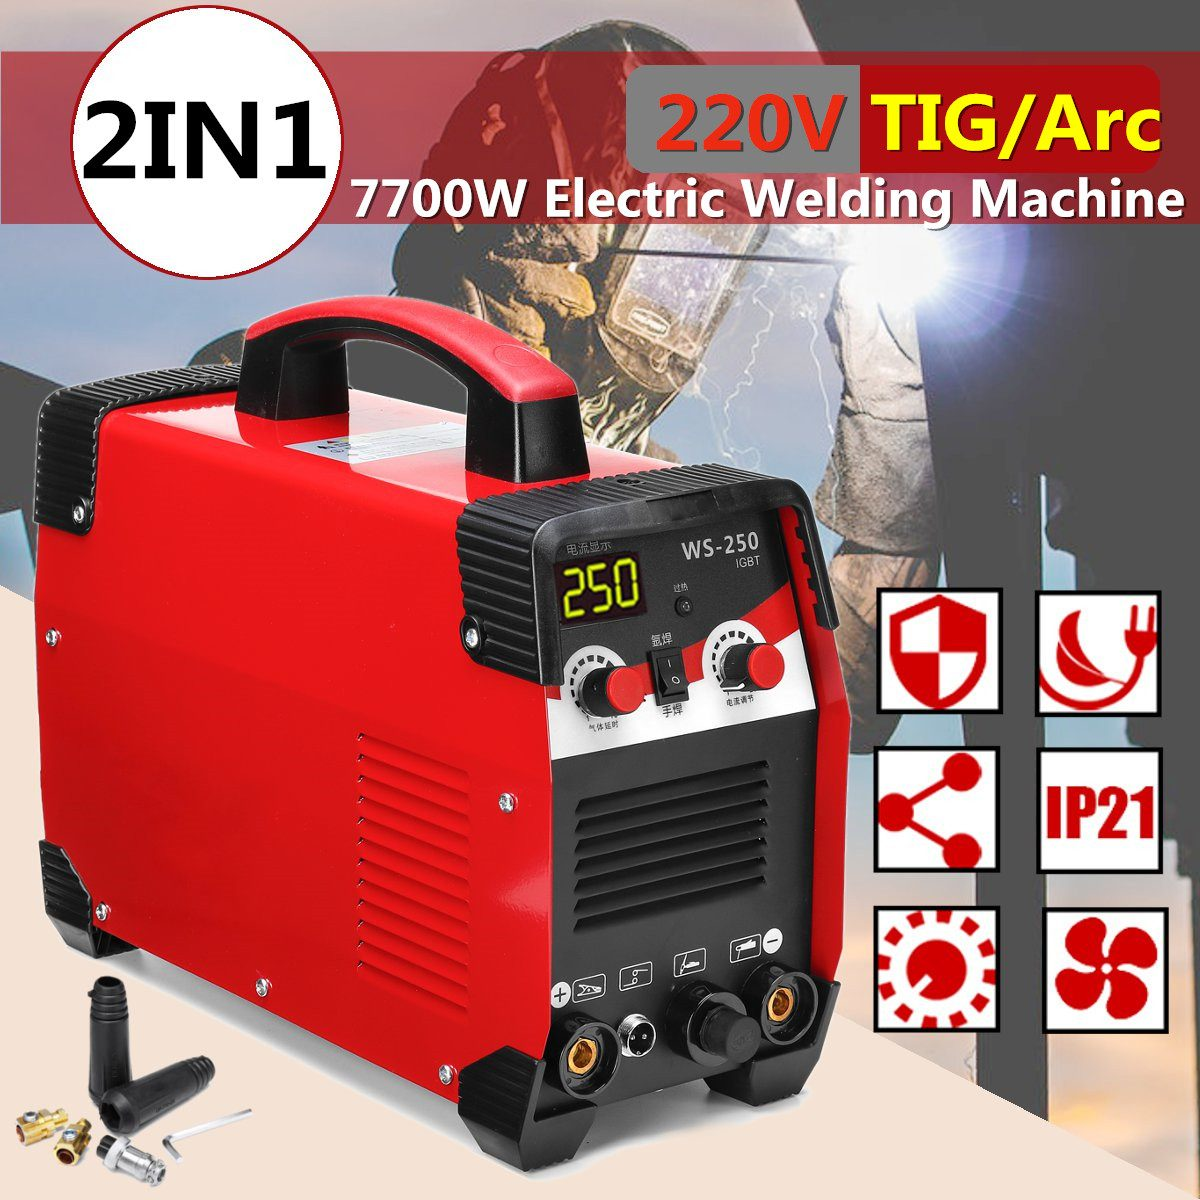 220V 7700W 20-250A 2IN1 TIG/ARC Electric Welding Machine MMA IGBT STICK Inverter For Welding Working and Electric Working220V 7700W 20-250A 2IN1 TIG/ARC Electric Welding Machine MMA IGBT STICK Inverter For Welding Working and Electric Working